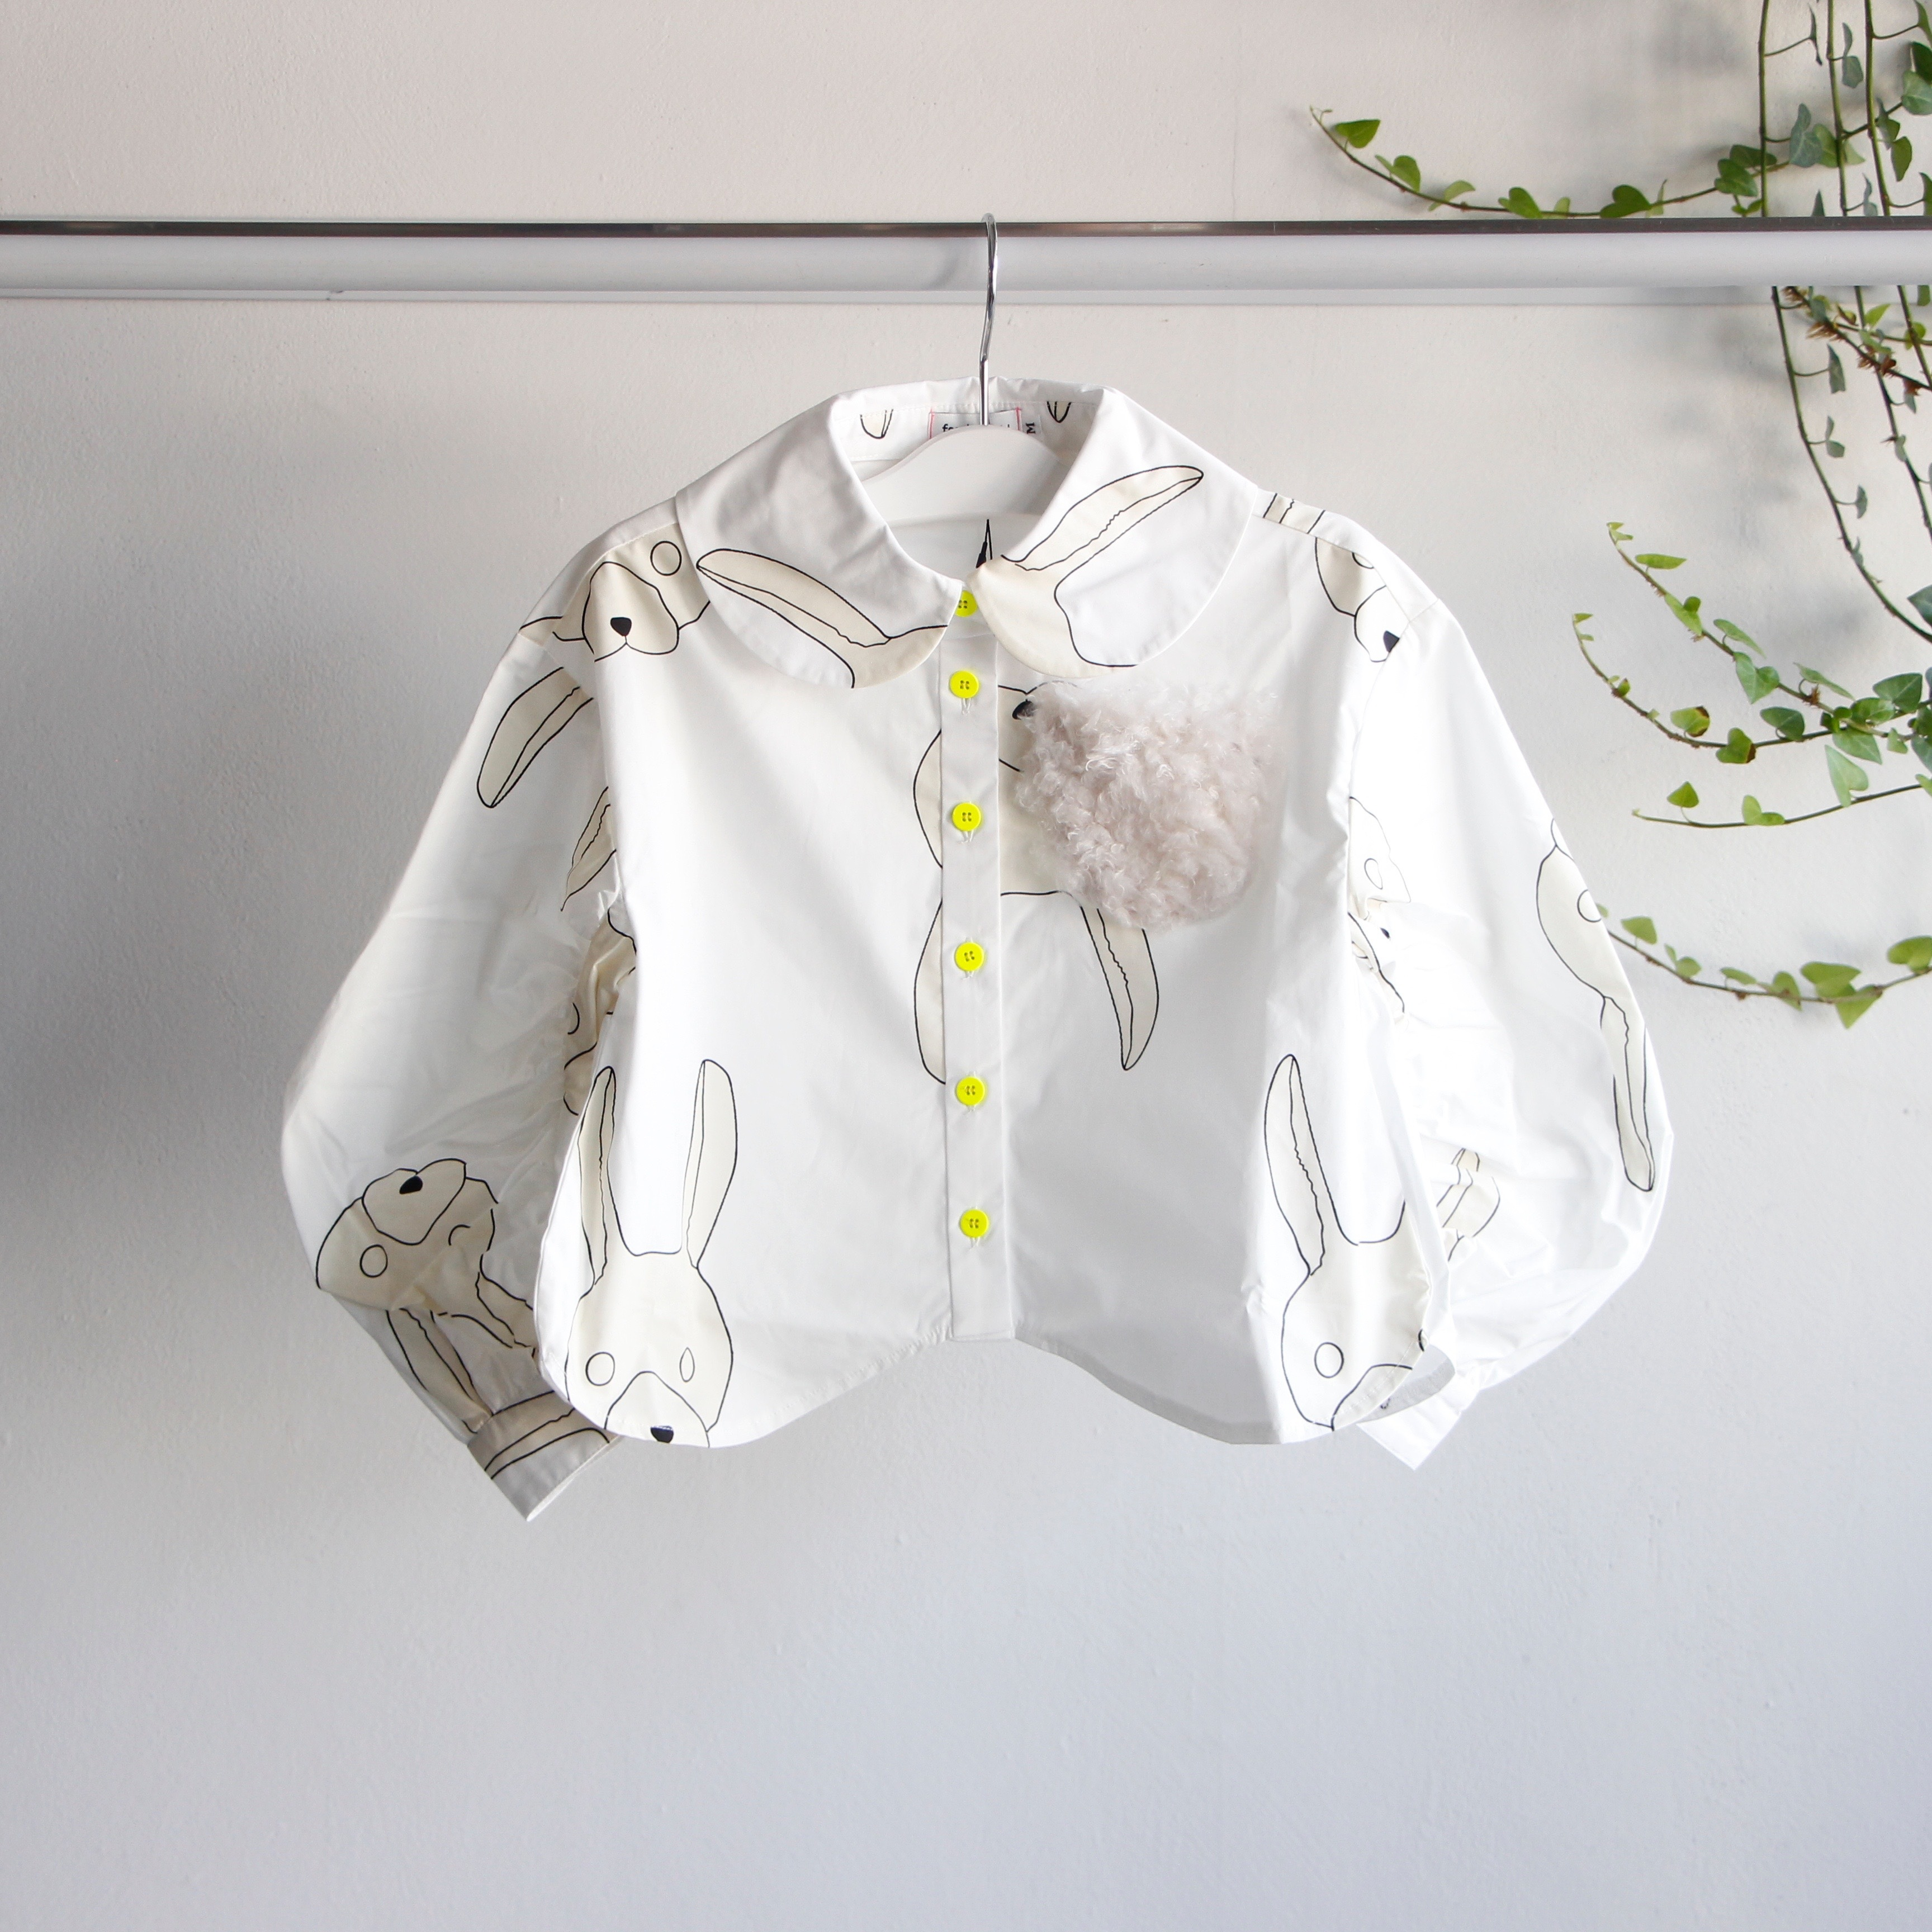 《frankygrow 2019AW》TOTAL HANDLE GATHER SLEEVES SHIRT / white × ivory × rabbit / S・M・L